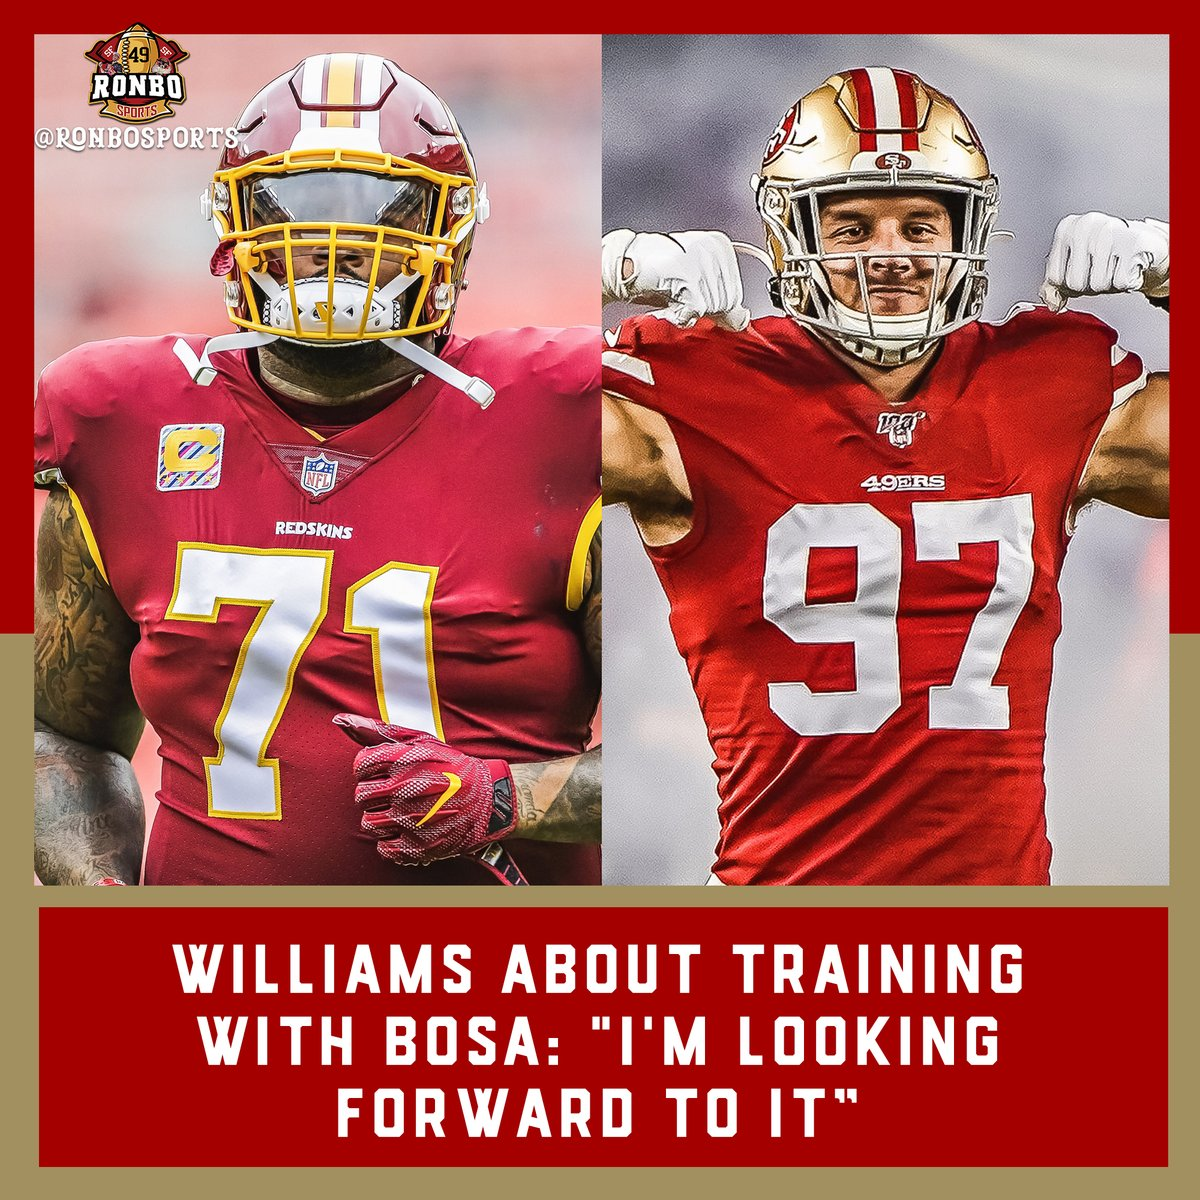 """""""Im looking forward to it, When I looked for a team to go to, I looked at the opposite side of the ball to see who can I sharpen my iron on every day in practice… OT Trent Williams #49ers #Thelegendaryrevengetour 49erswebzone.com/articles/13713…"""